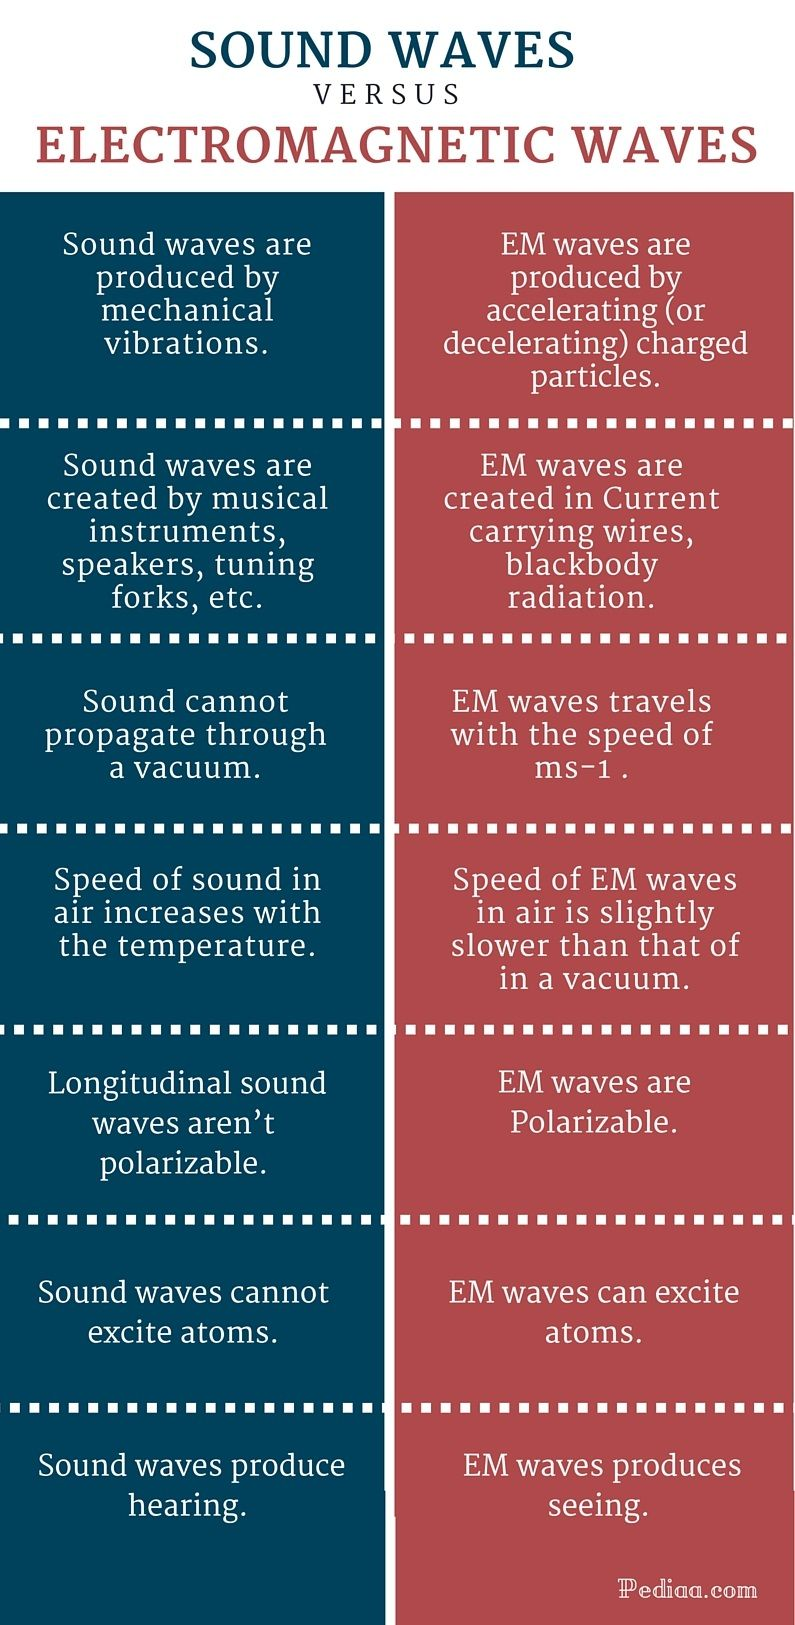 Difference Between Sound Waves And Electromagnetic